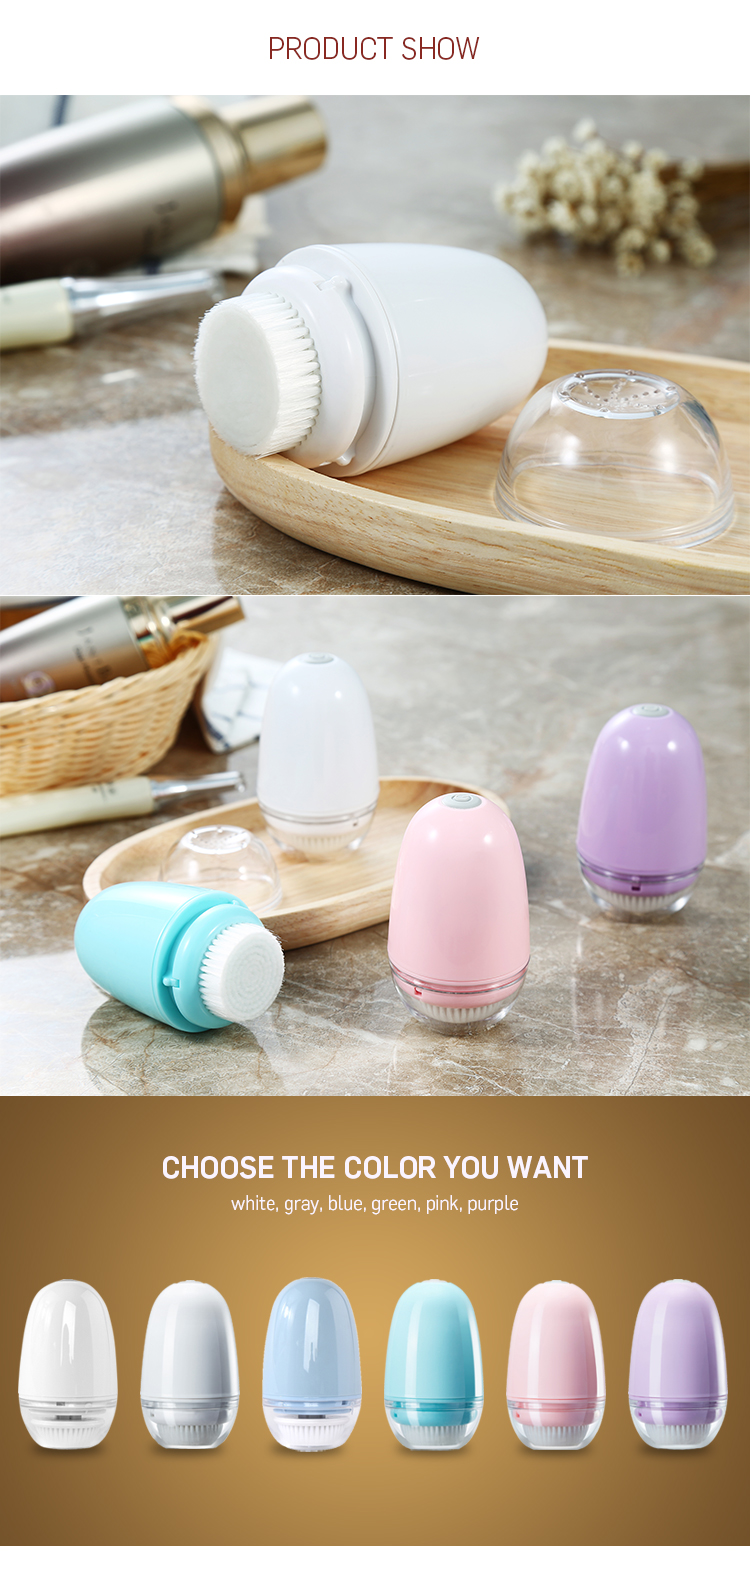 Hot Sale Deep Clean Makeup brush Electric Facial Cleansing Brush